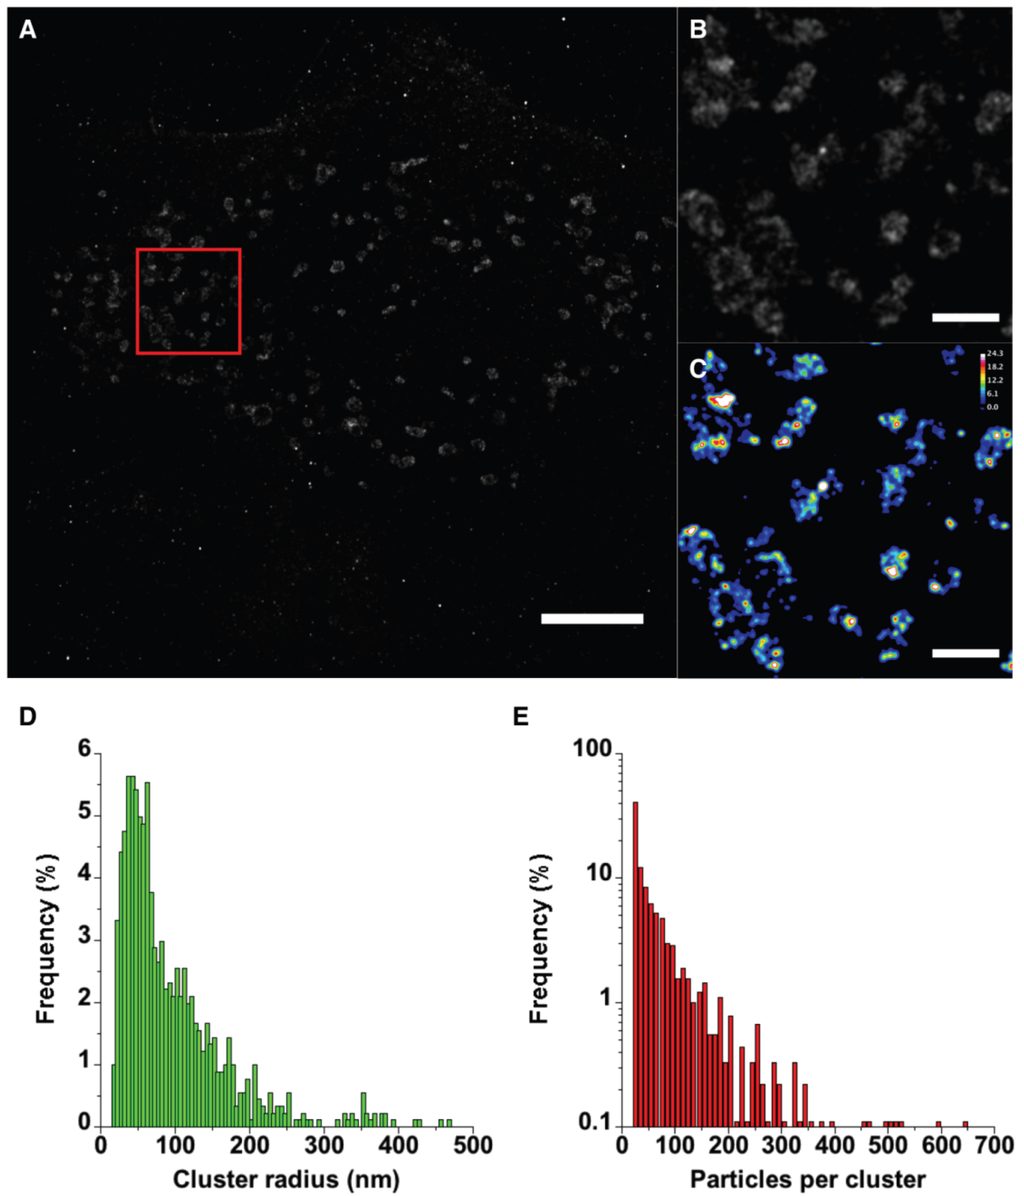 Viruses | Free Full-Text | Superresolution Imaging Of Human ... tout Dalle Bip Airial Gris